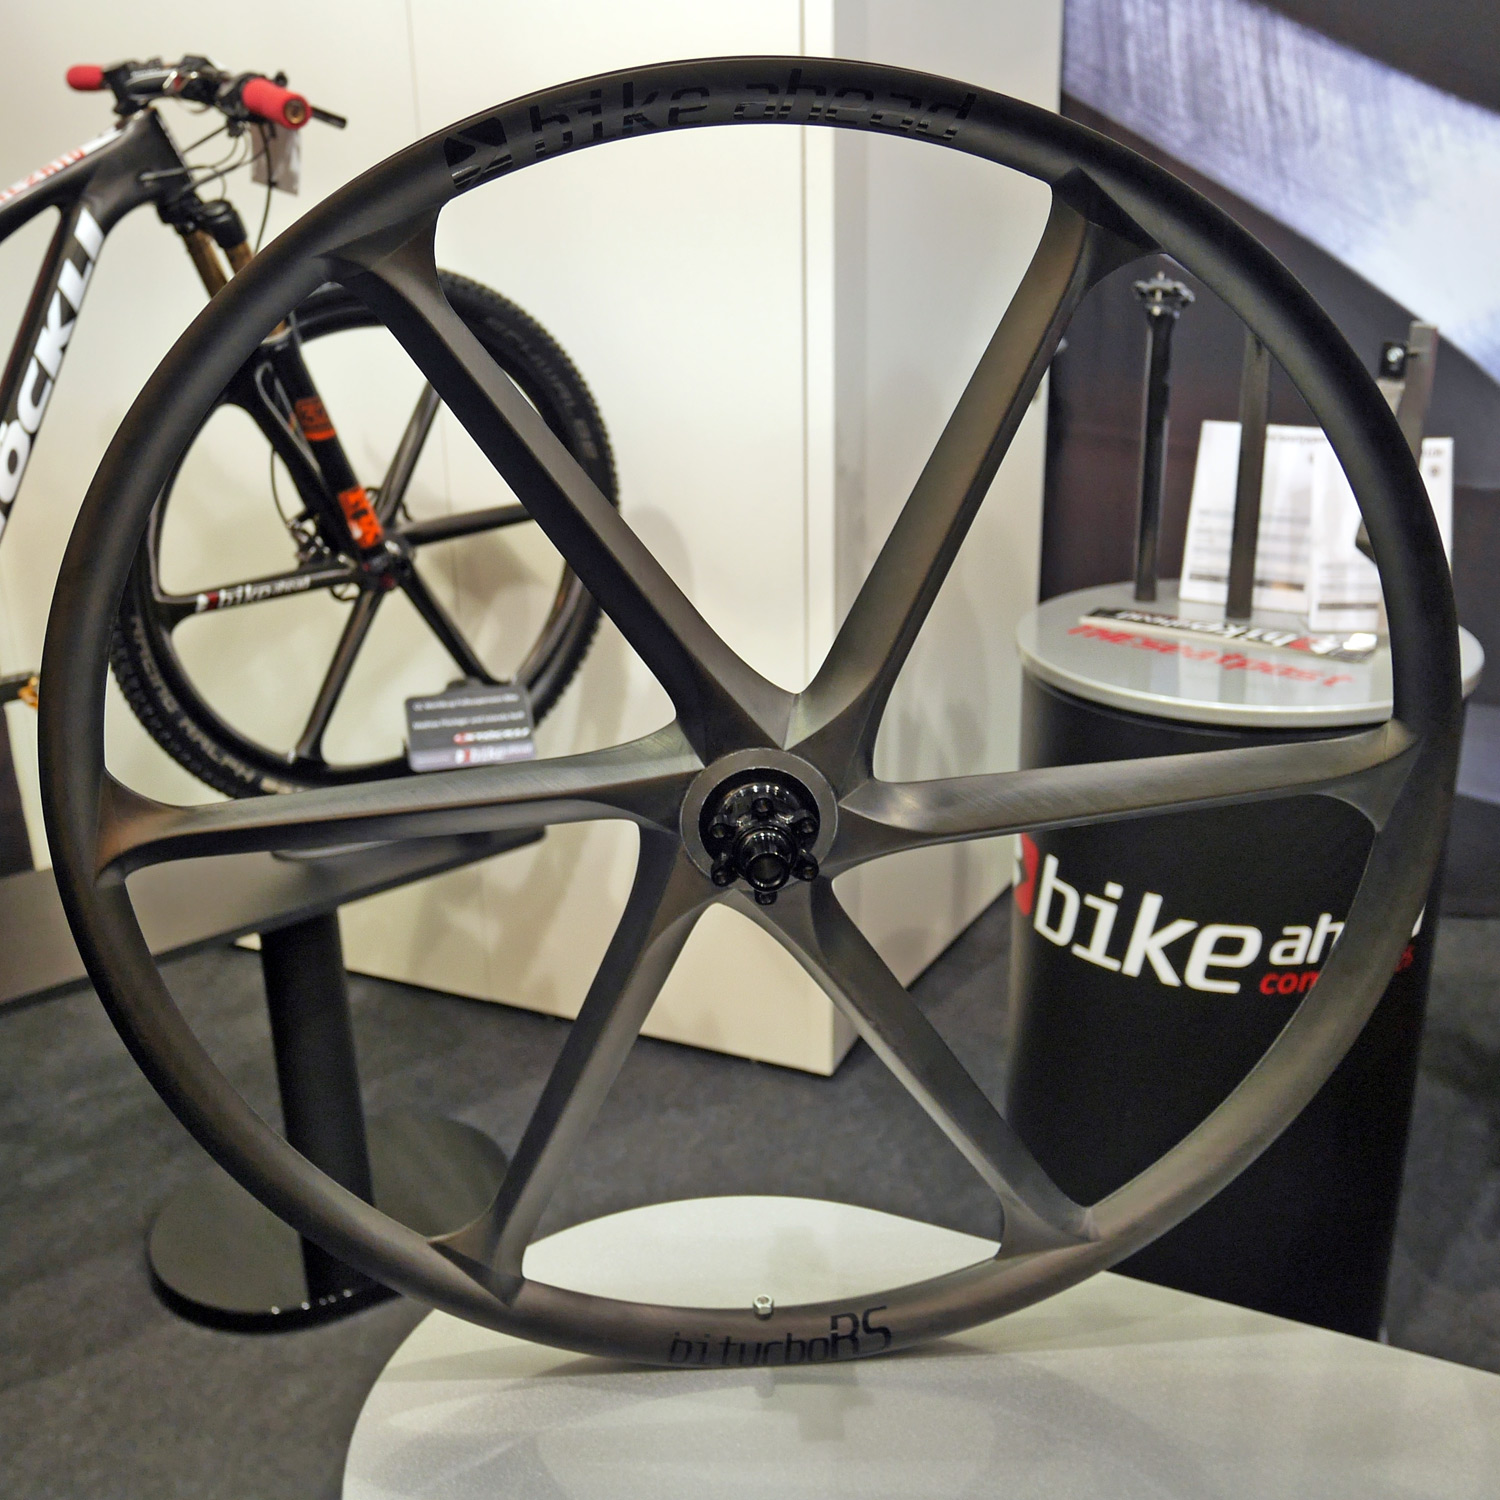 Eb15 Bike Ahead S 1kg Ac One Xc Wheelset Plus More For Road And